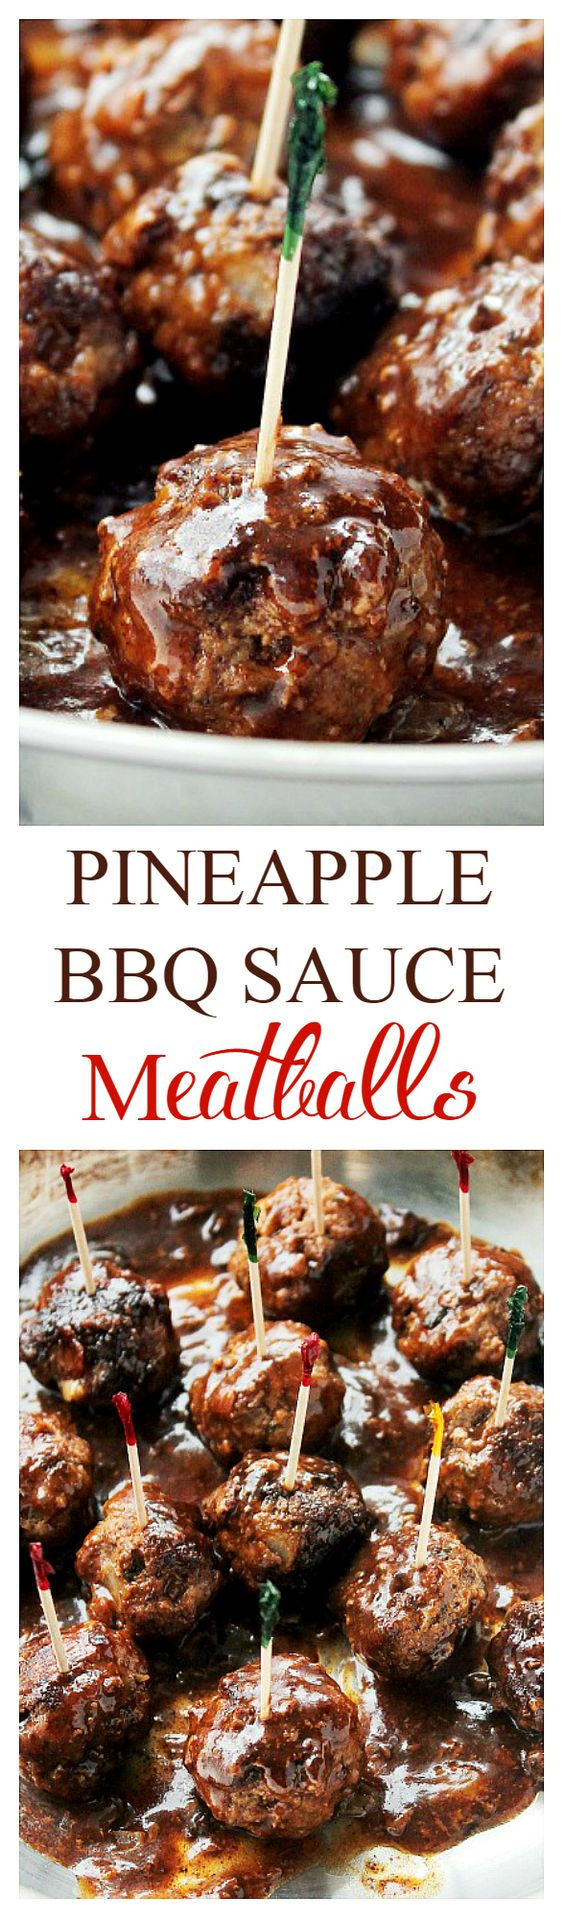 Pineapple Barbecue Sauce Glazed Meatballs - Delicious, juicy, homemade Meatballs prepared with a sweet and tangy Pineapple Barbecue Sauce. Get the recipe on diethood.com